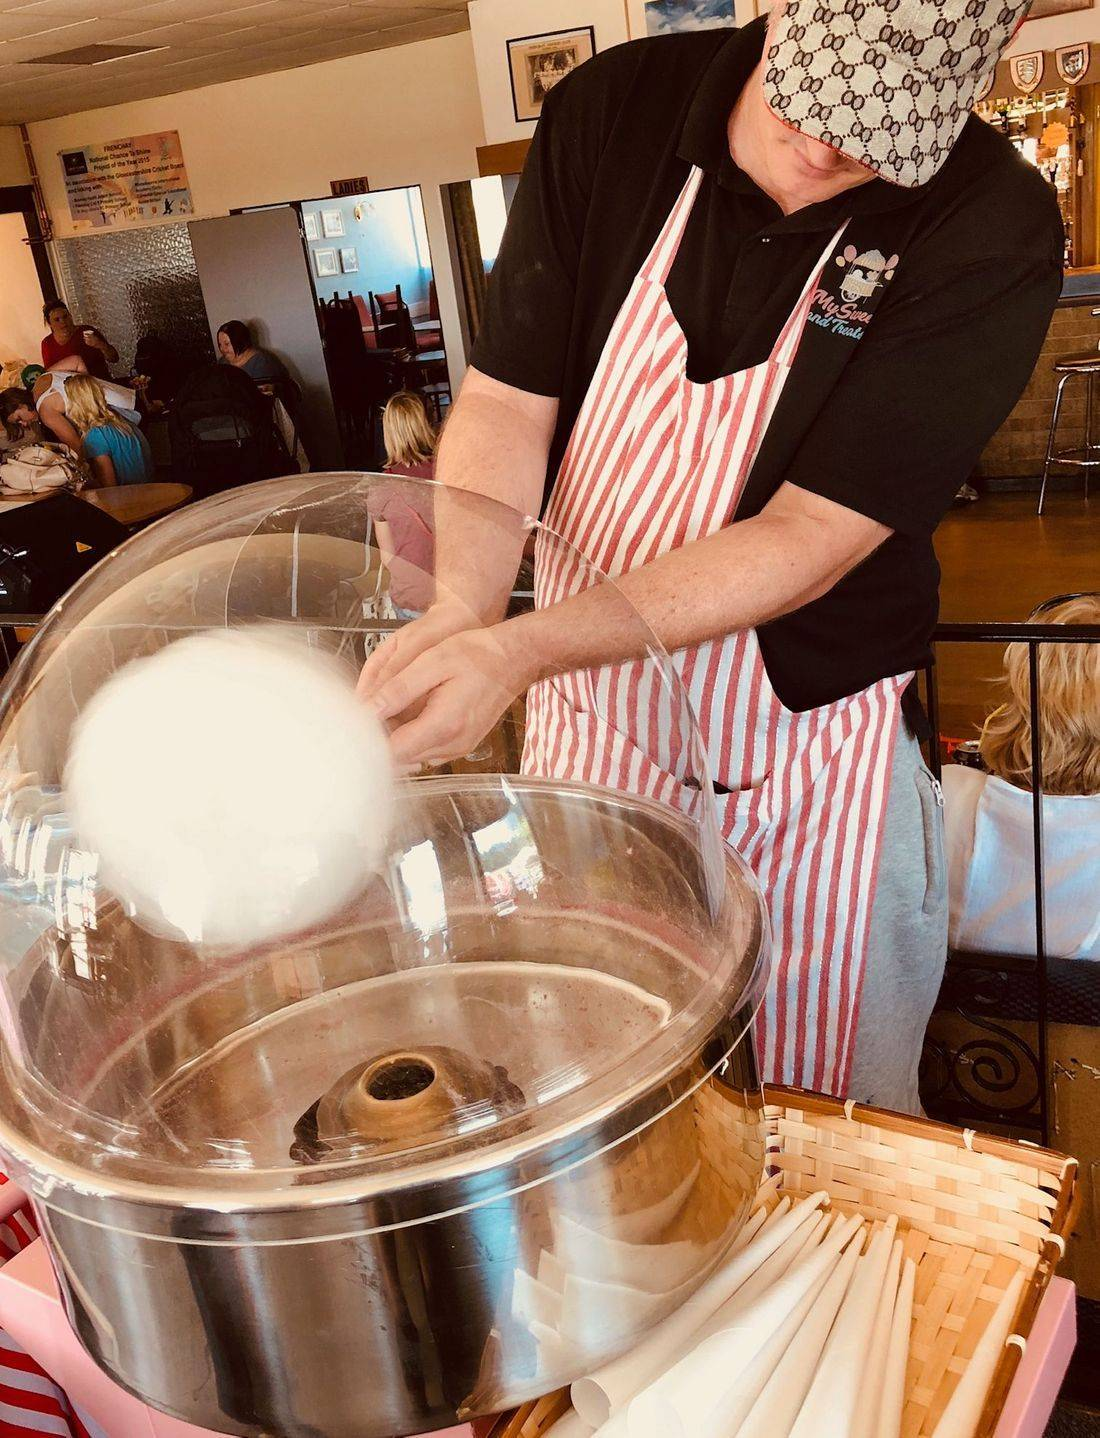 Candy floss prosecco